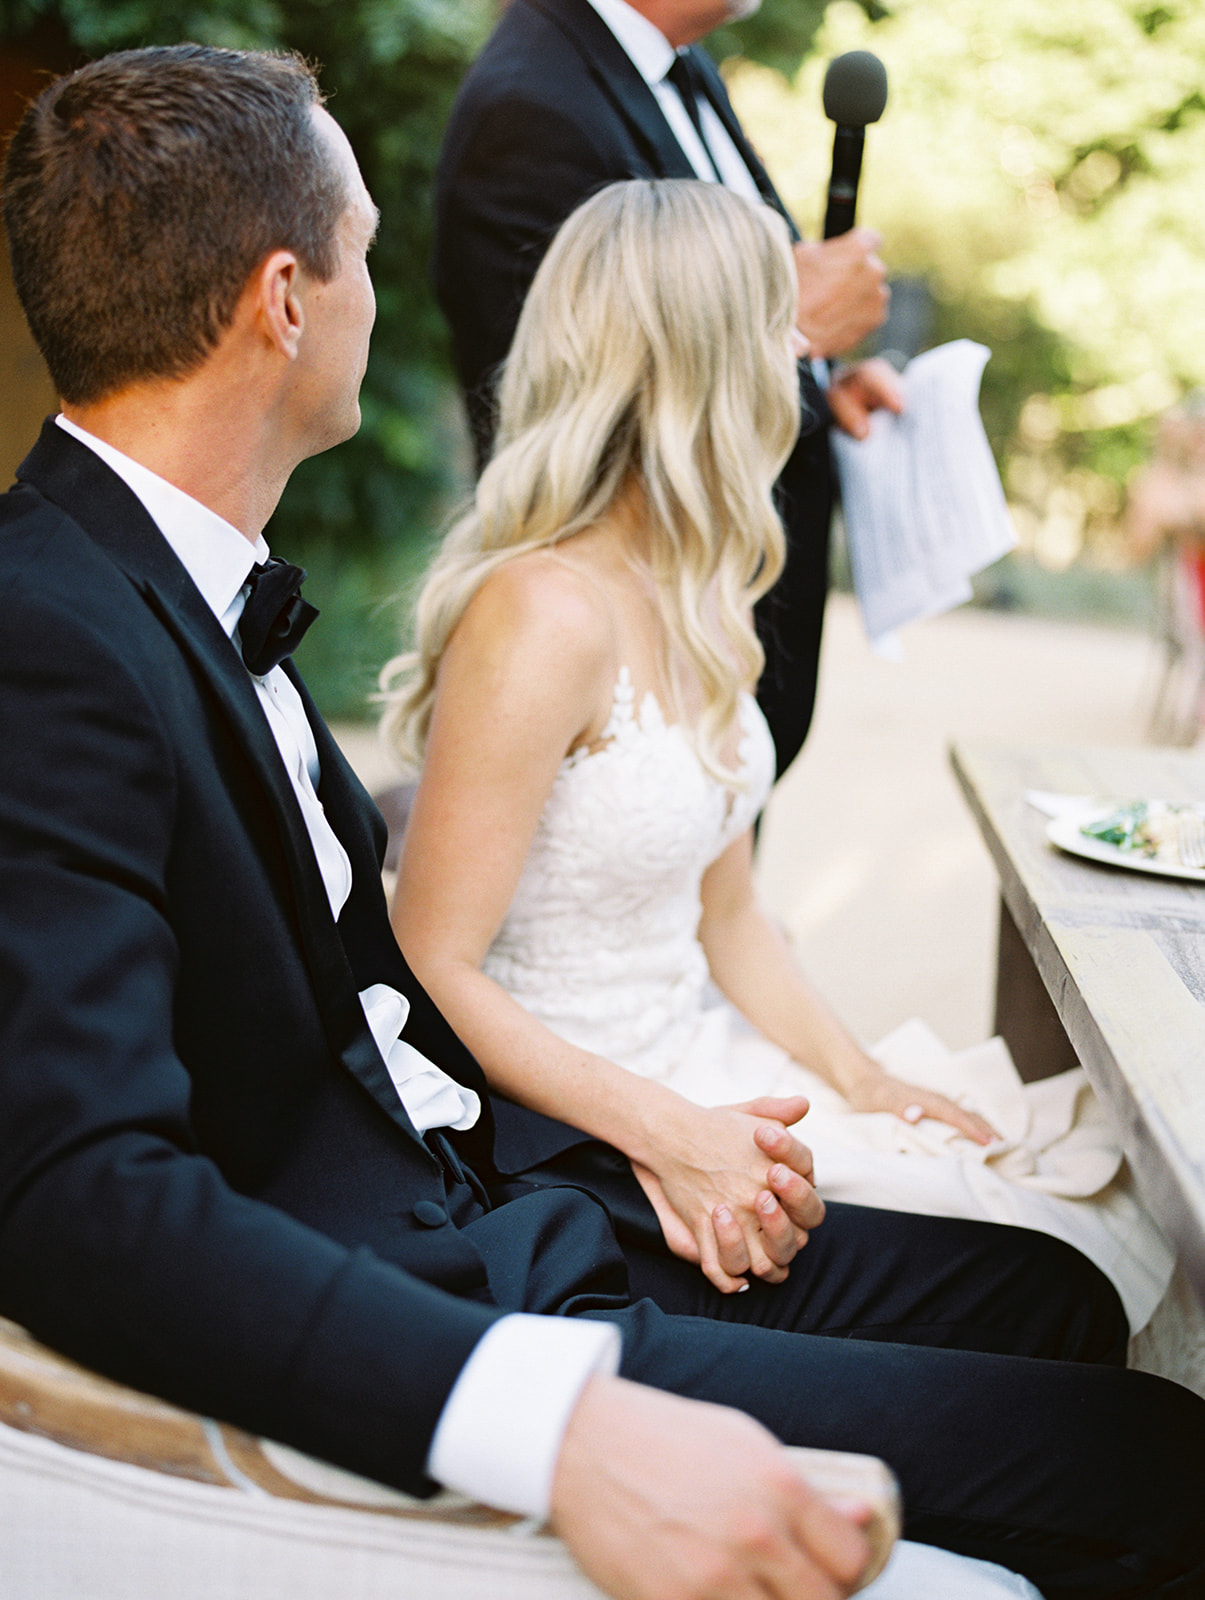 bride and groom sitting at sweetheart table holding hands